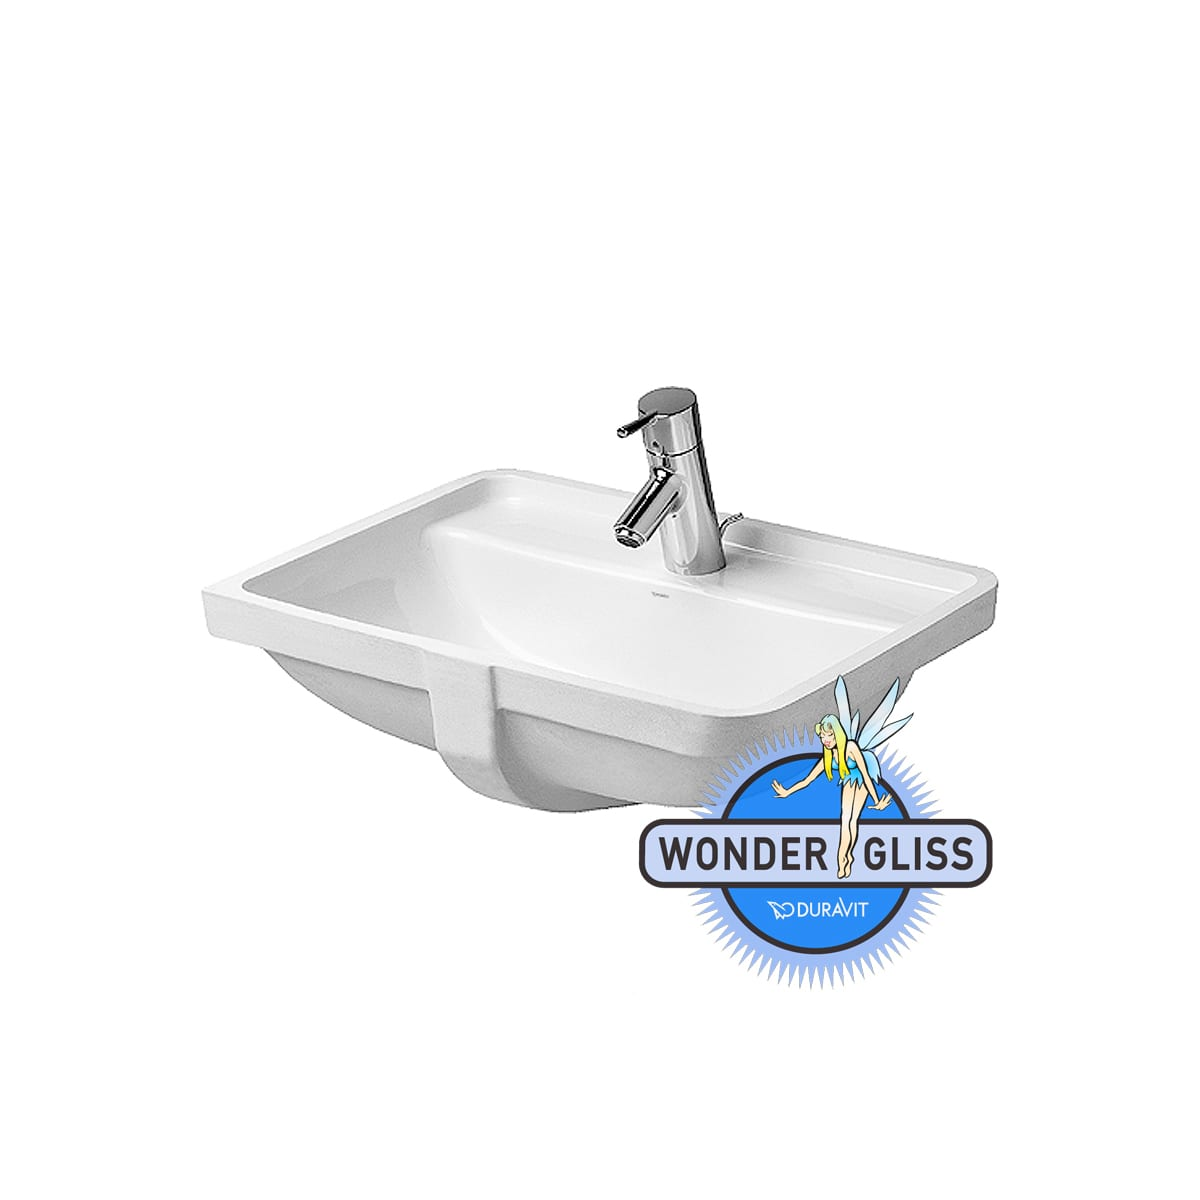 Duravit 03024900001 Starck 3 Ceramic 20 11 16 Undermount Bathroom Sink With Single Faucet Hole And Overflow 03024900001 Snyder Diamond